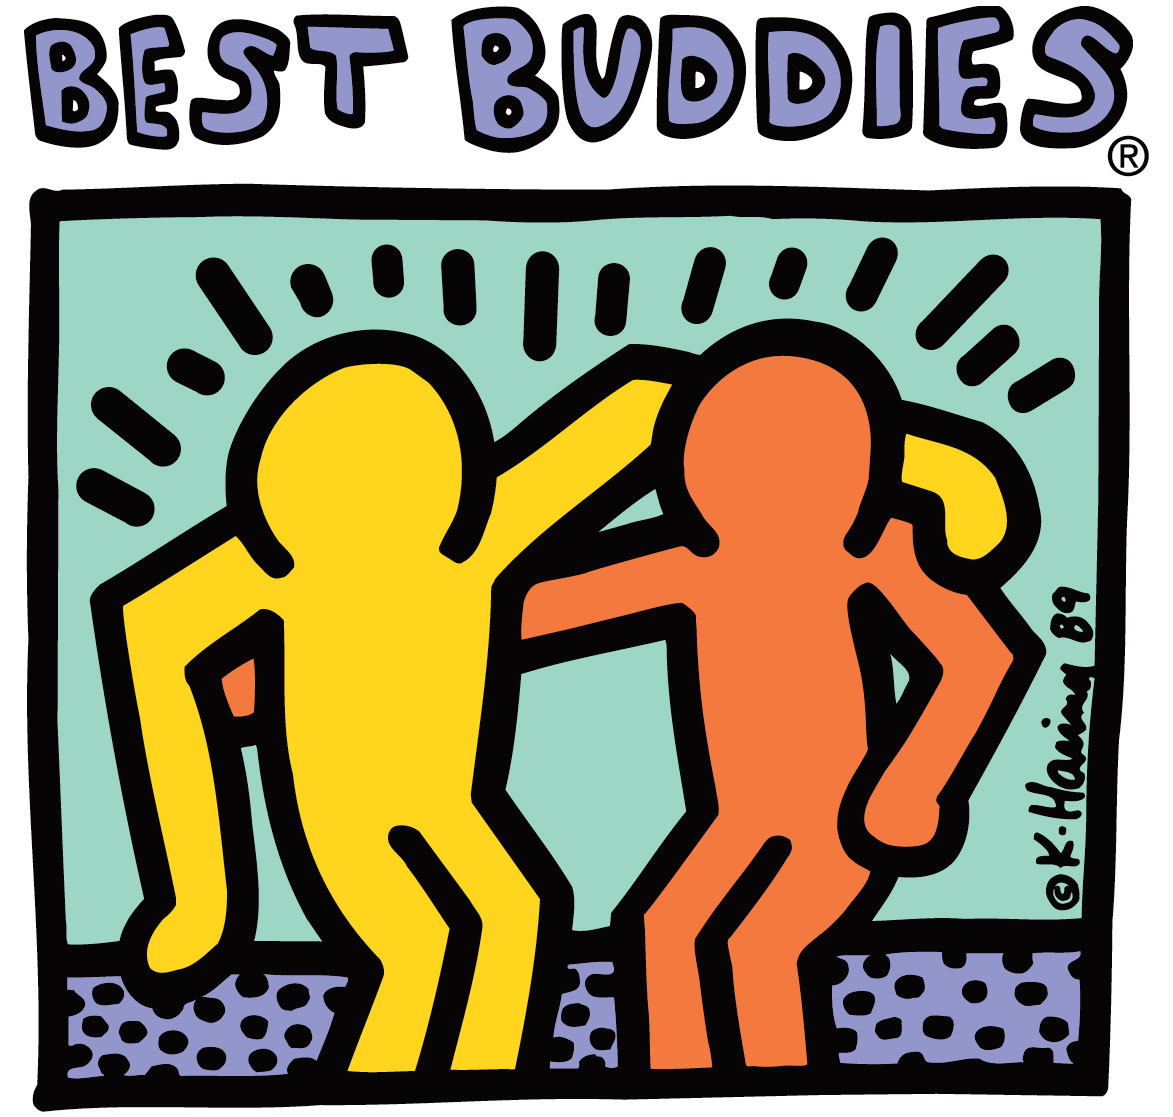 Keith Haring's artwork is used as the Best Buddies logo